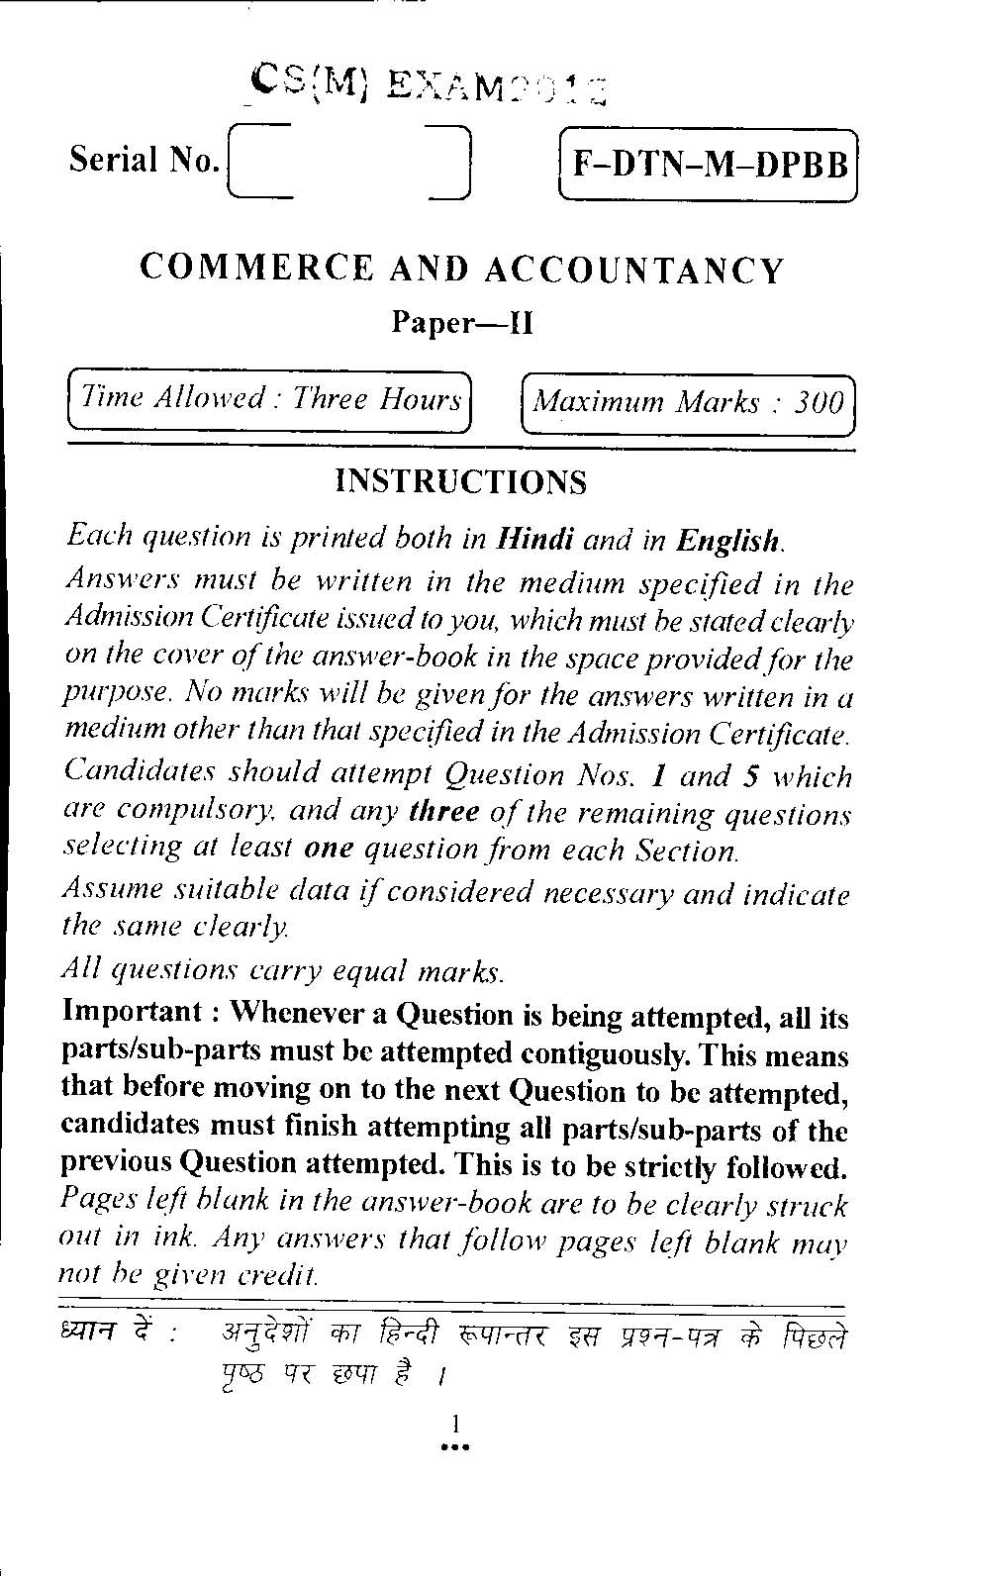 014 What Is An American Essay Example Civil Services Examination Commerce And Accountancy Paper Ii Previous Years Que Stupendous Ideas Definition Crevecoeur Summary Full